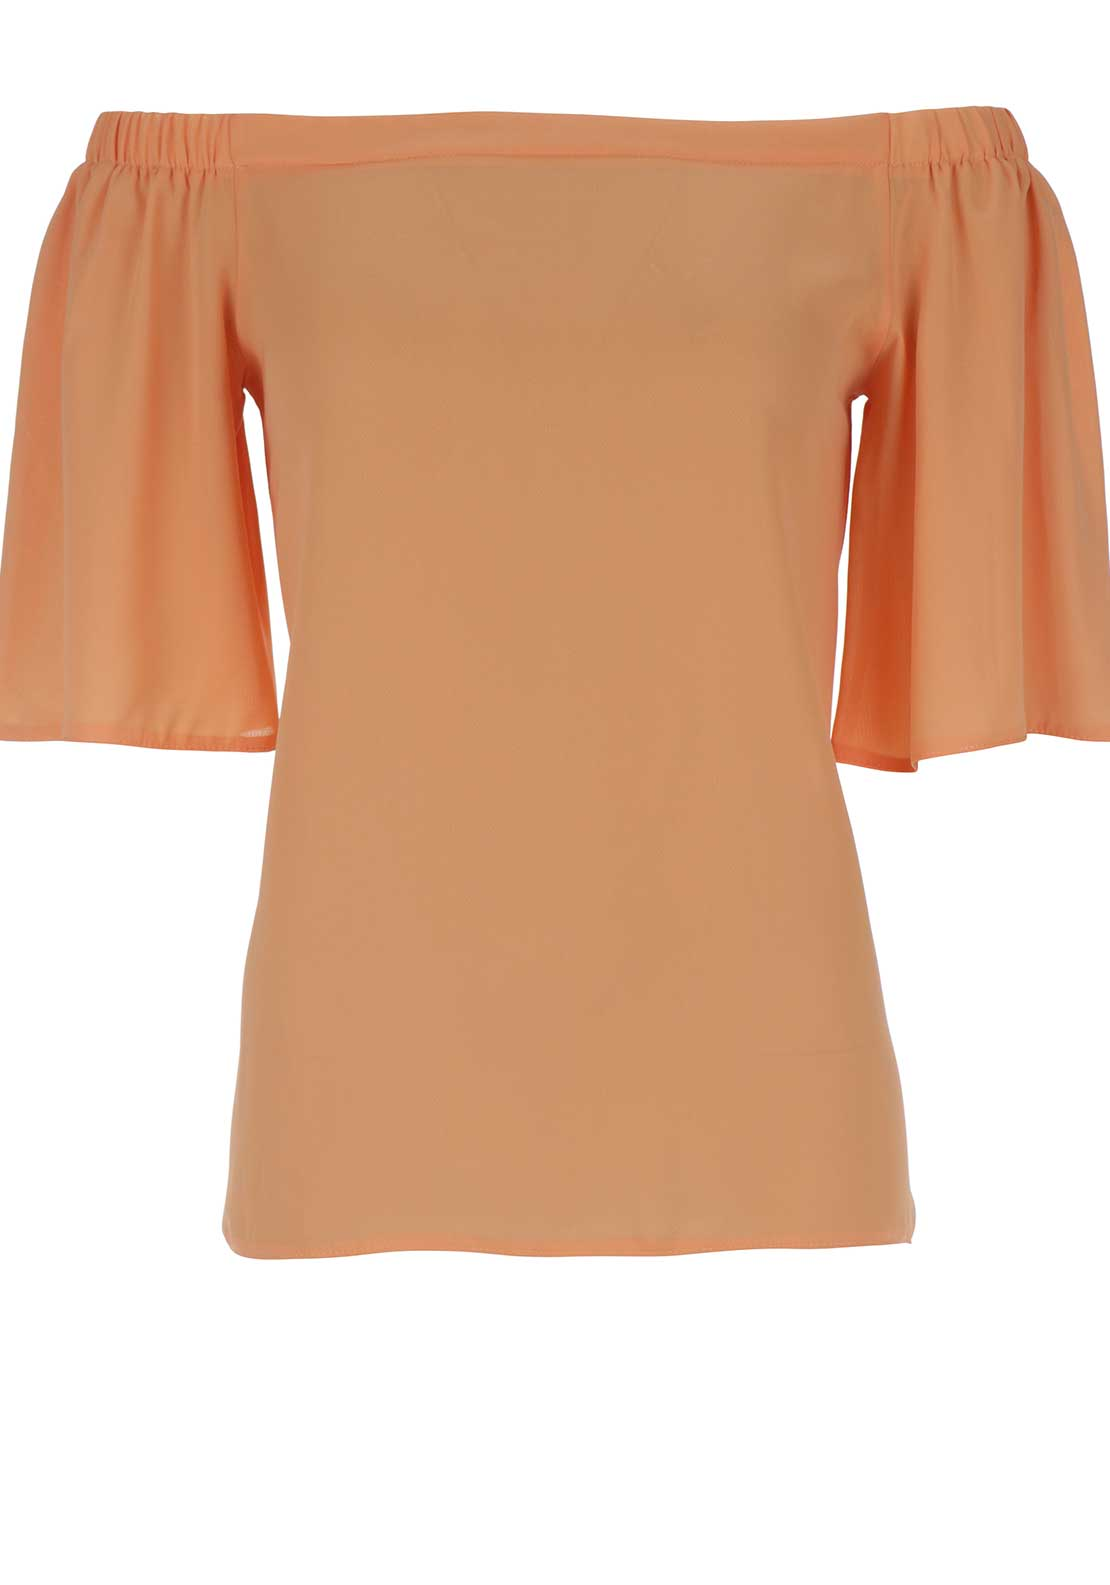 Boutique Off The Shoulder Top, Peach